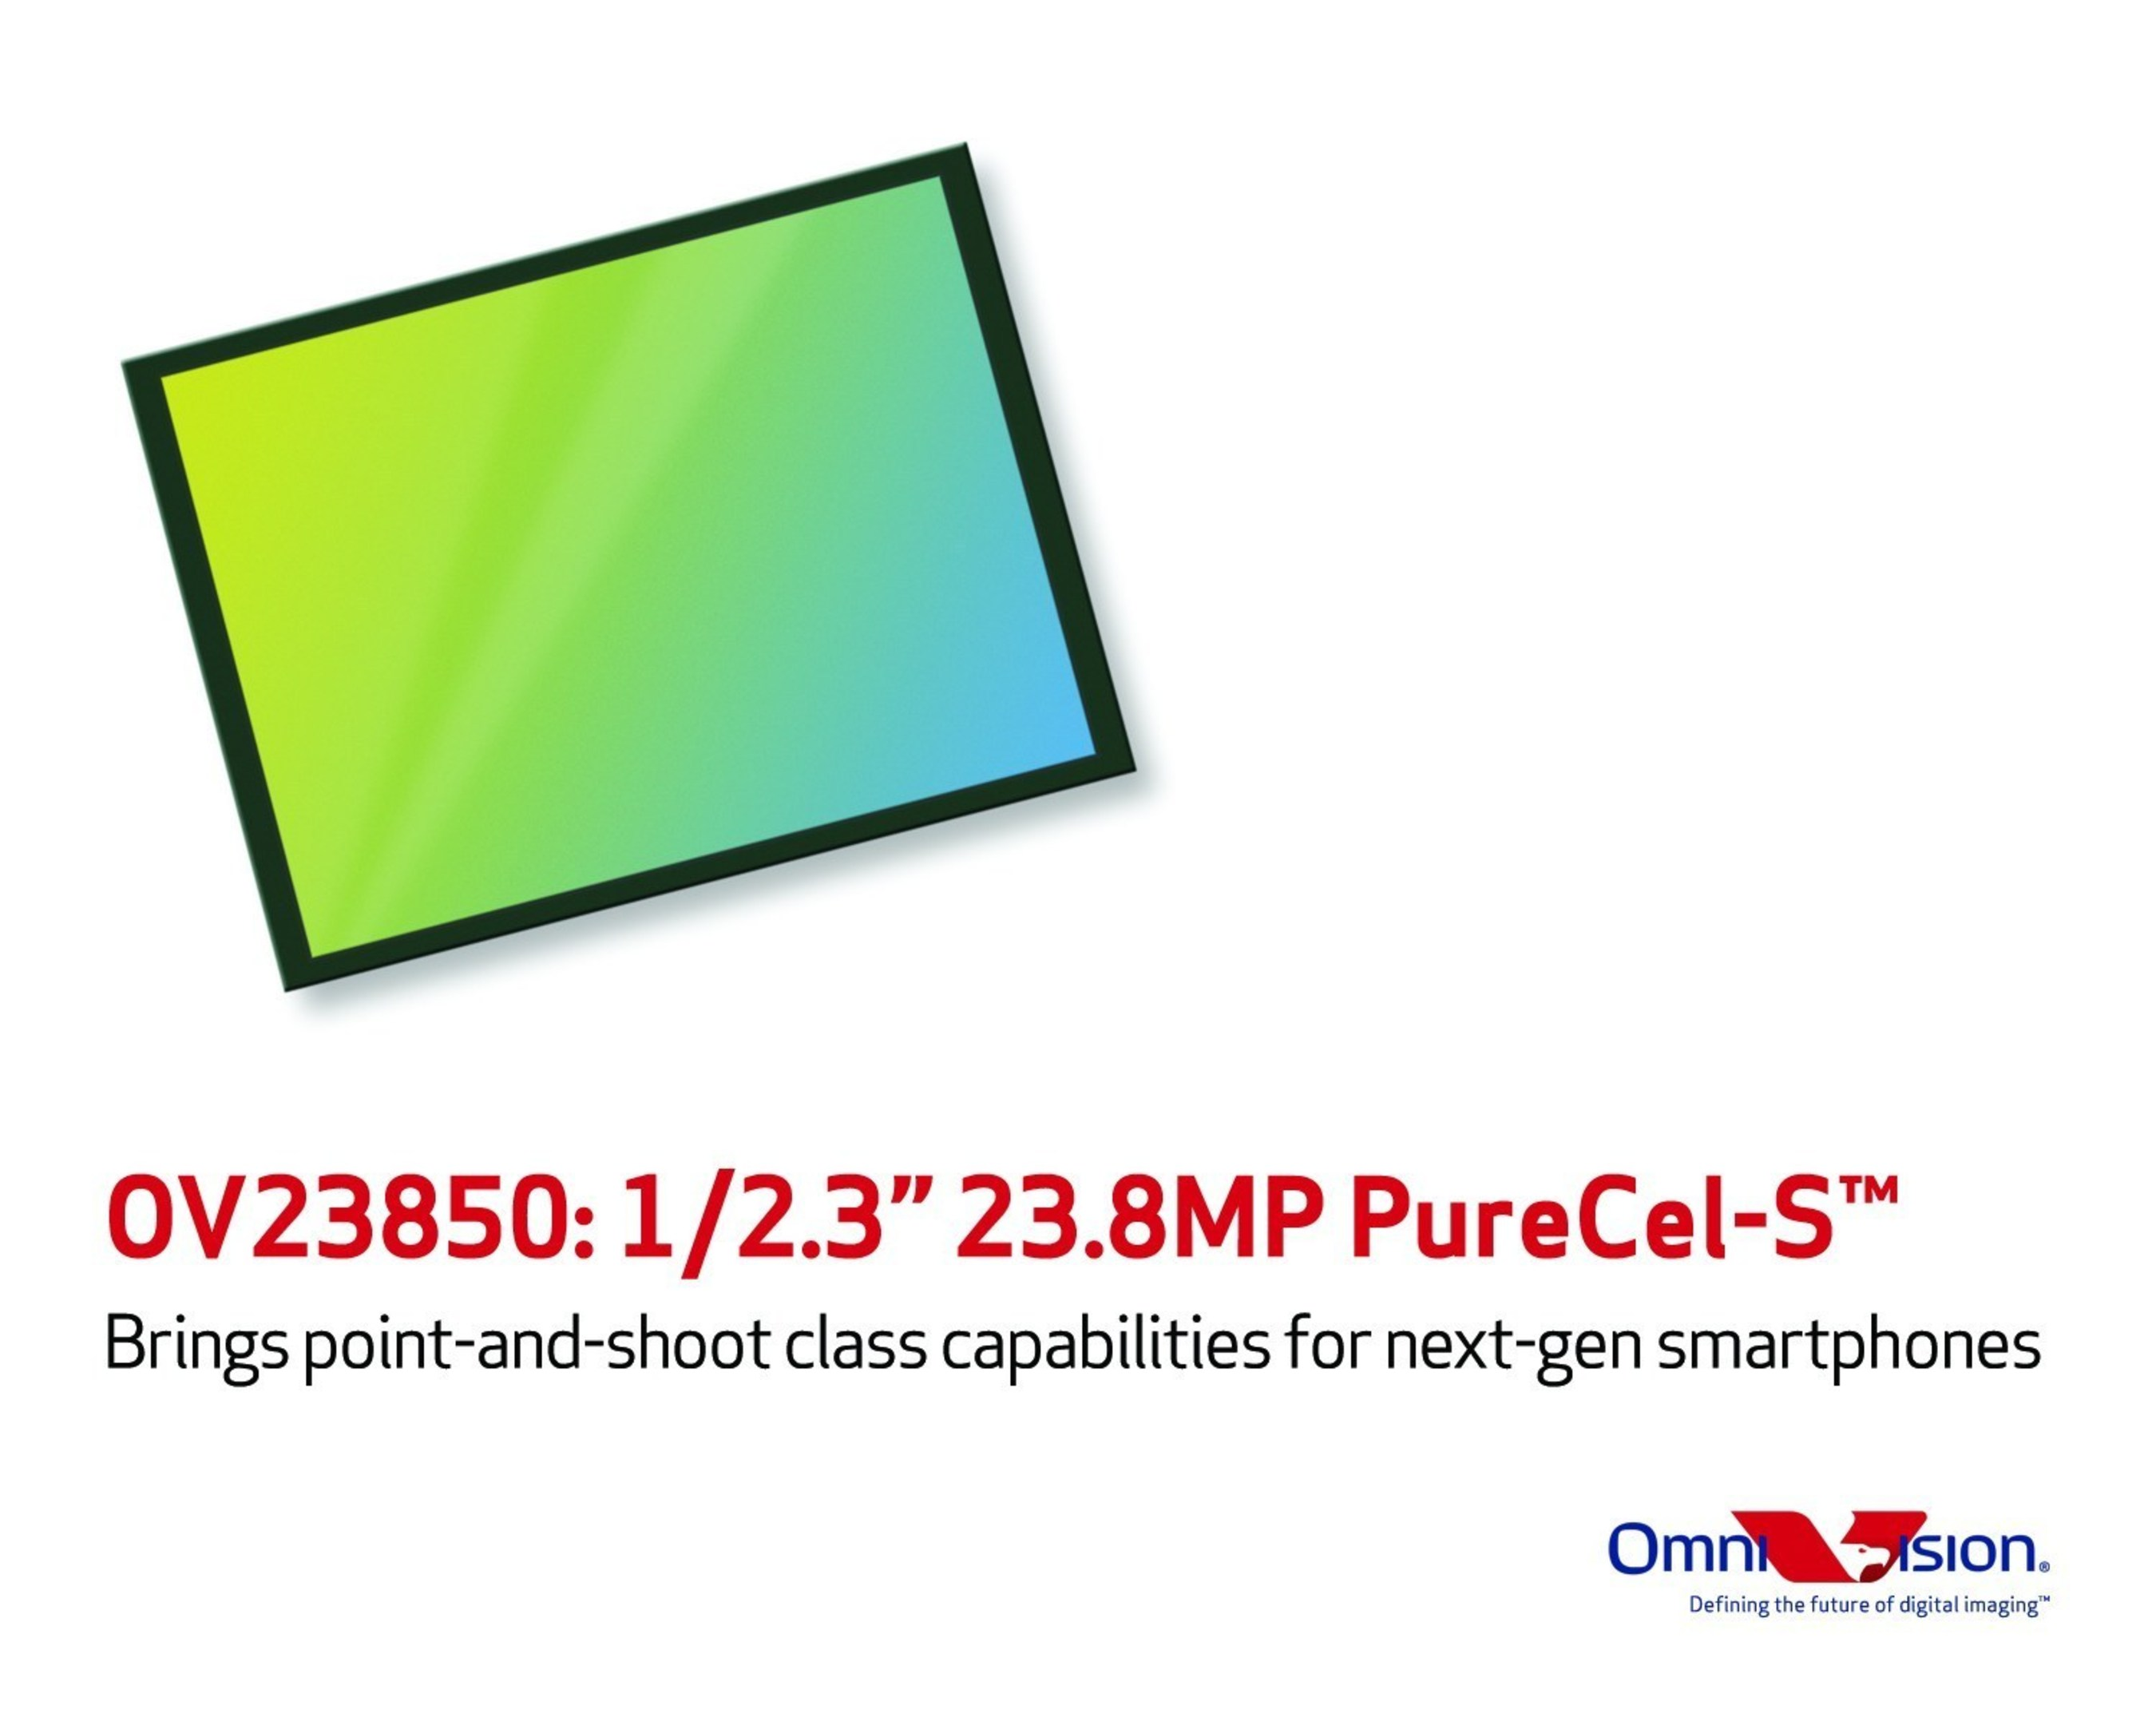 OmniVision's new family of 20  megapixel sensors bring point-and-shoot image quality and capabilities to next-generation smartphones.